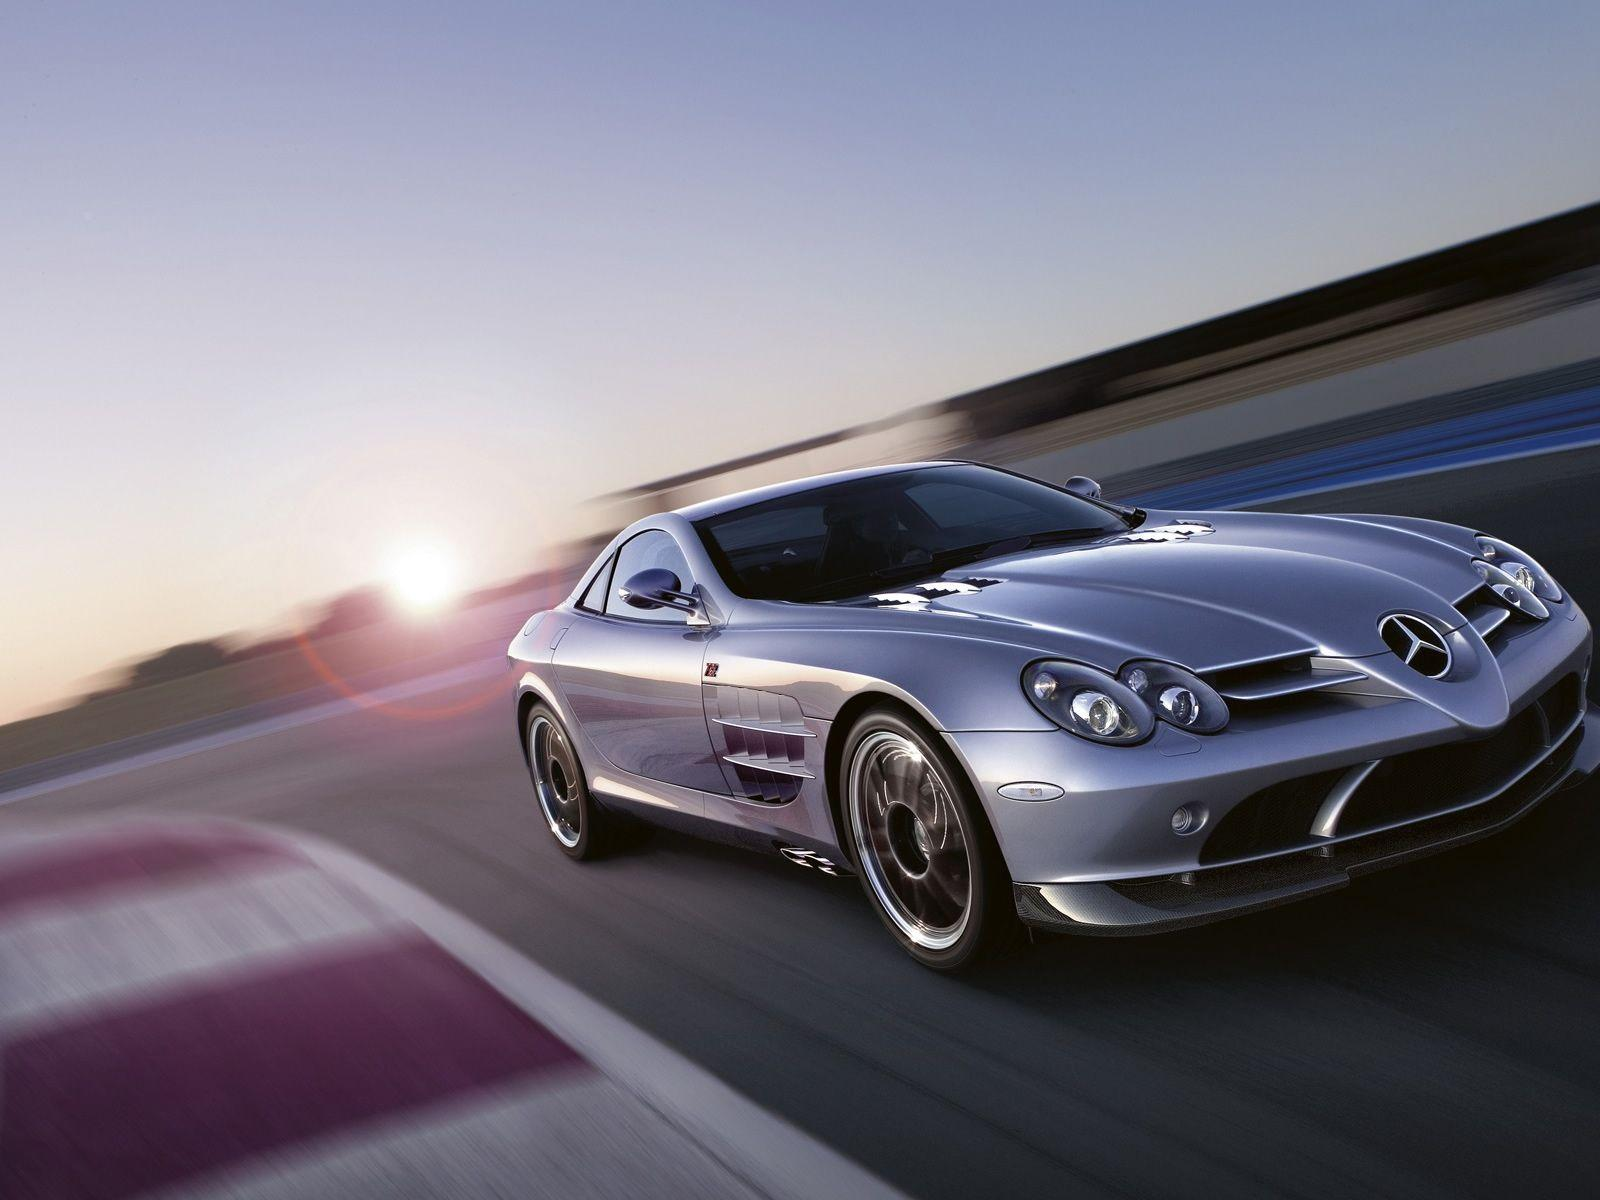 Page 1503 | Mercedes slr fast car wallpaper hd wallpapers ...